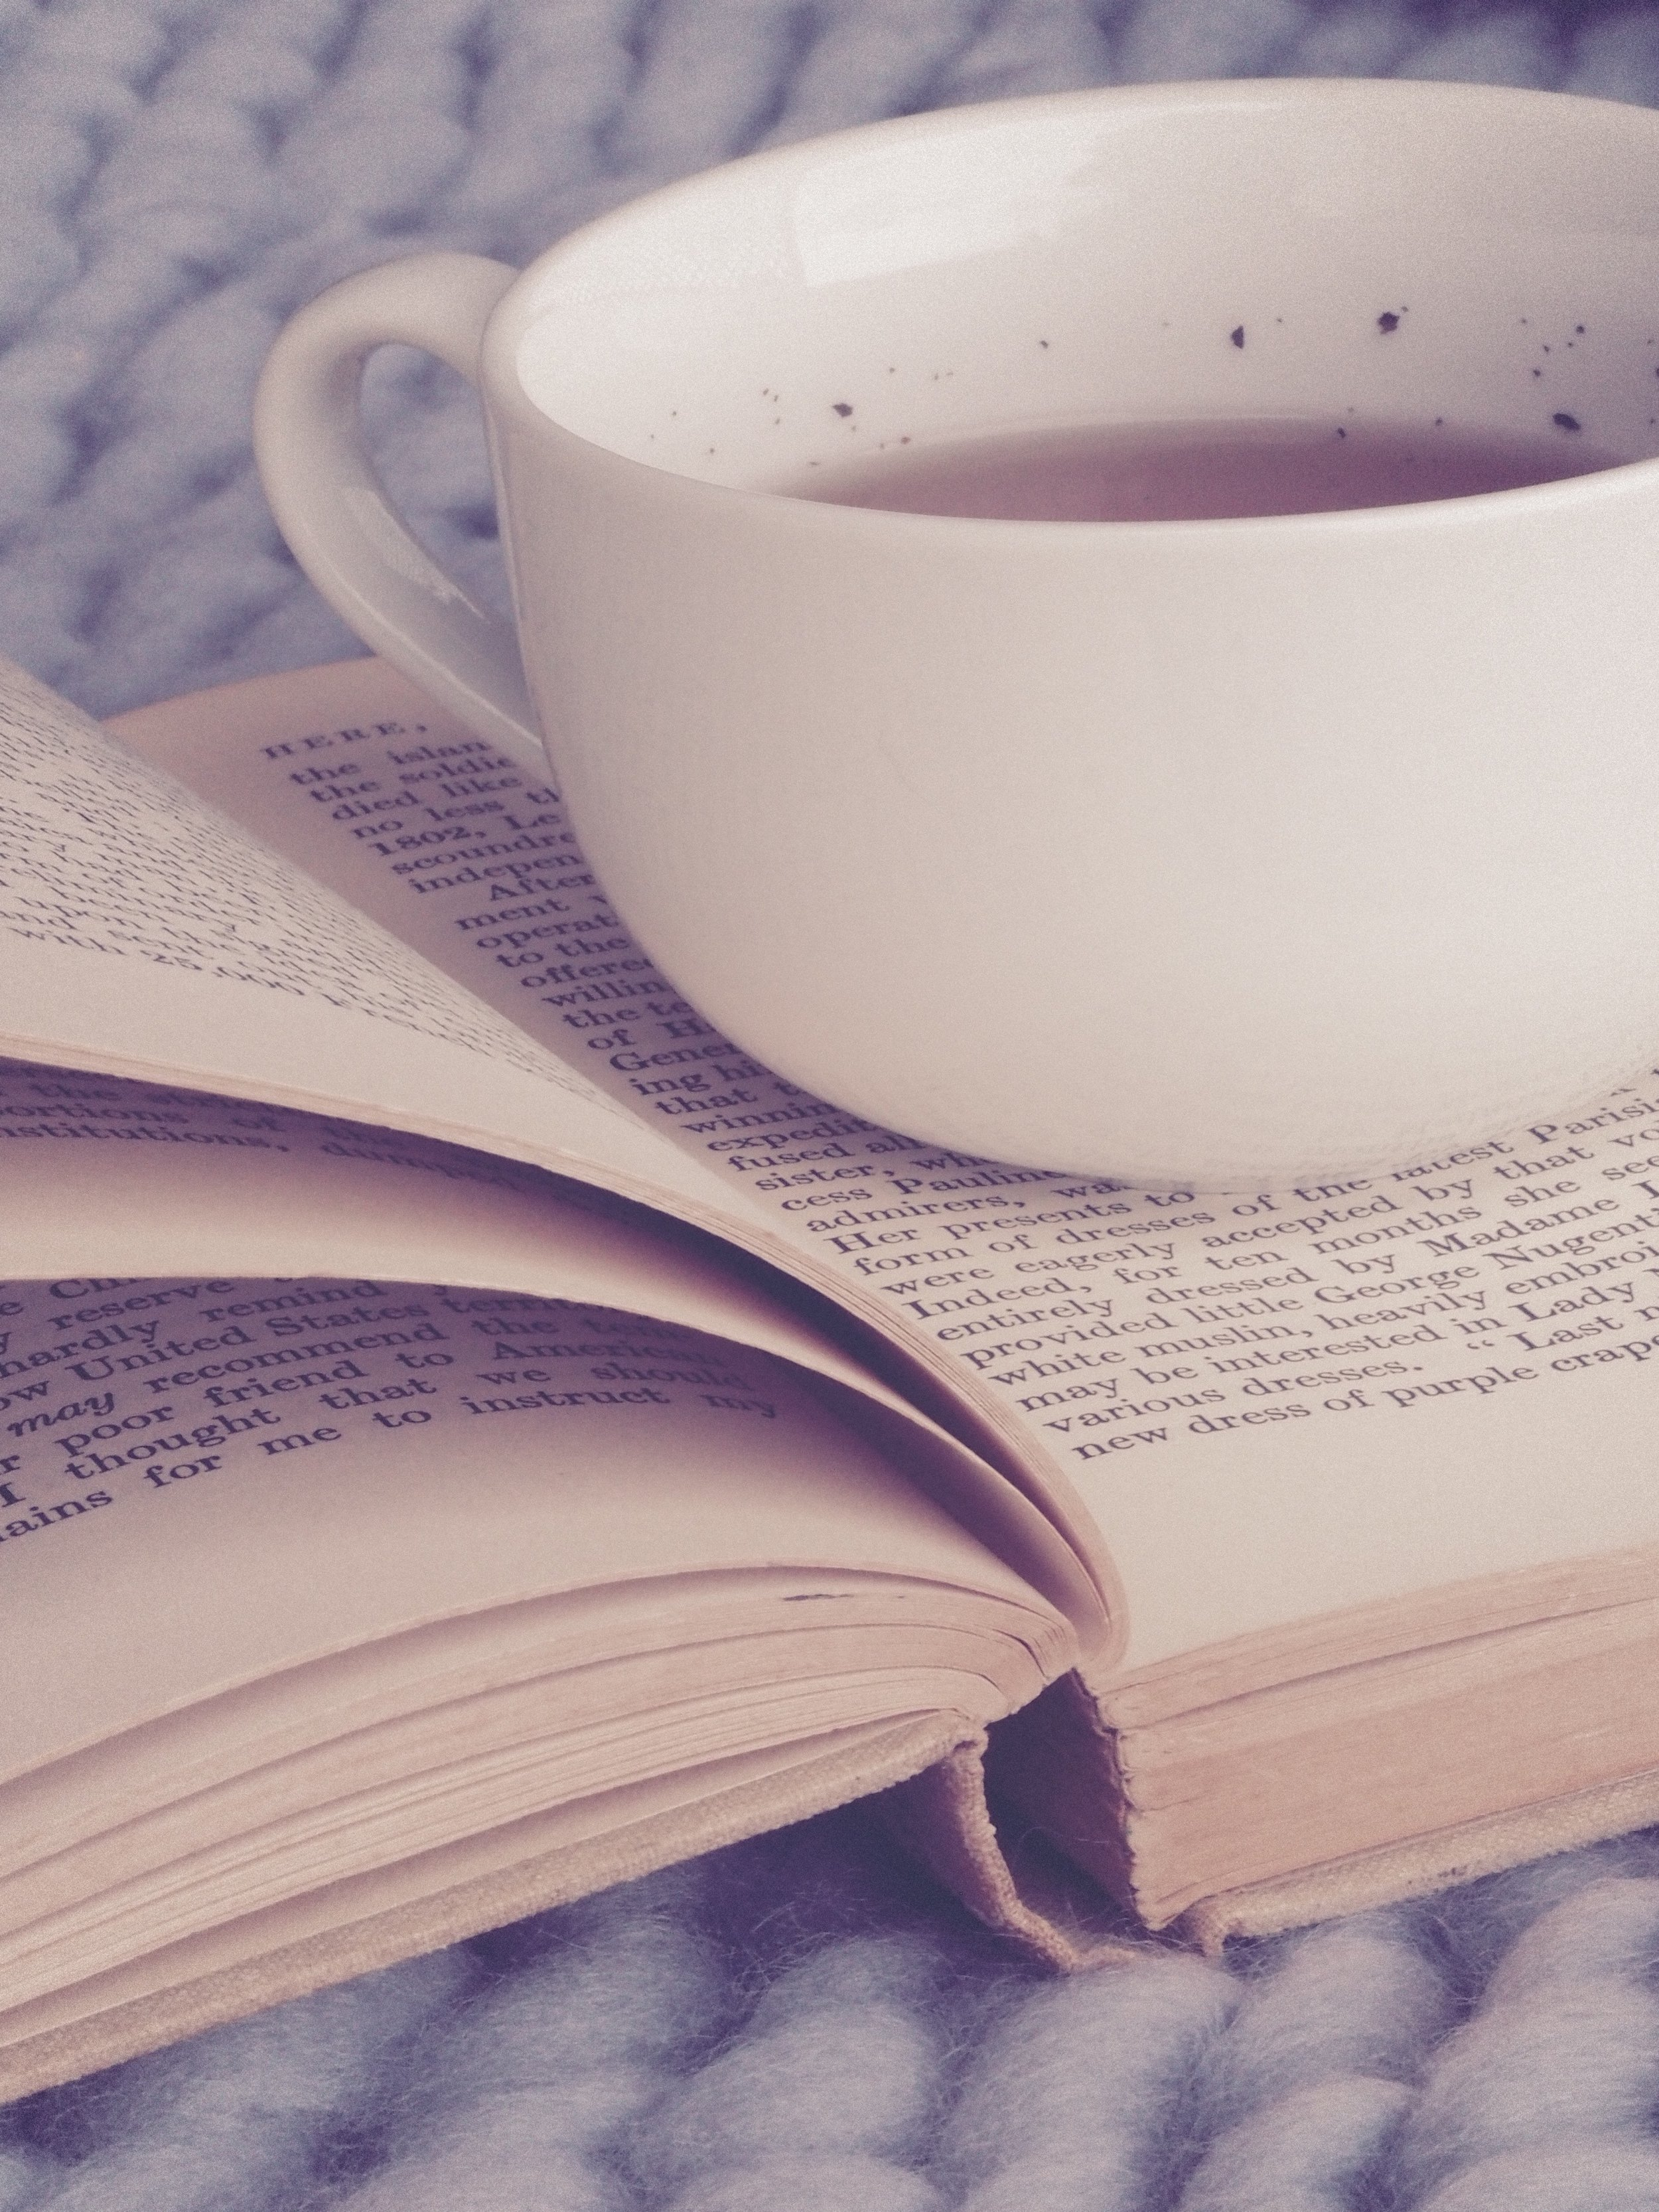 book-book-pages-cup-895464.jpg